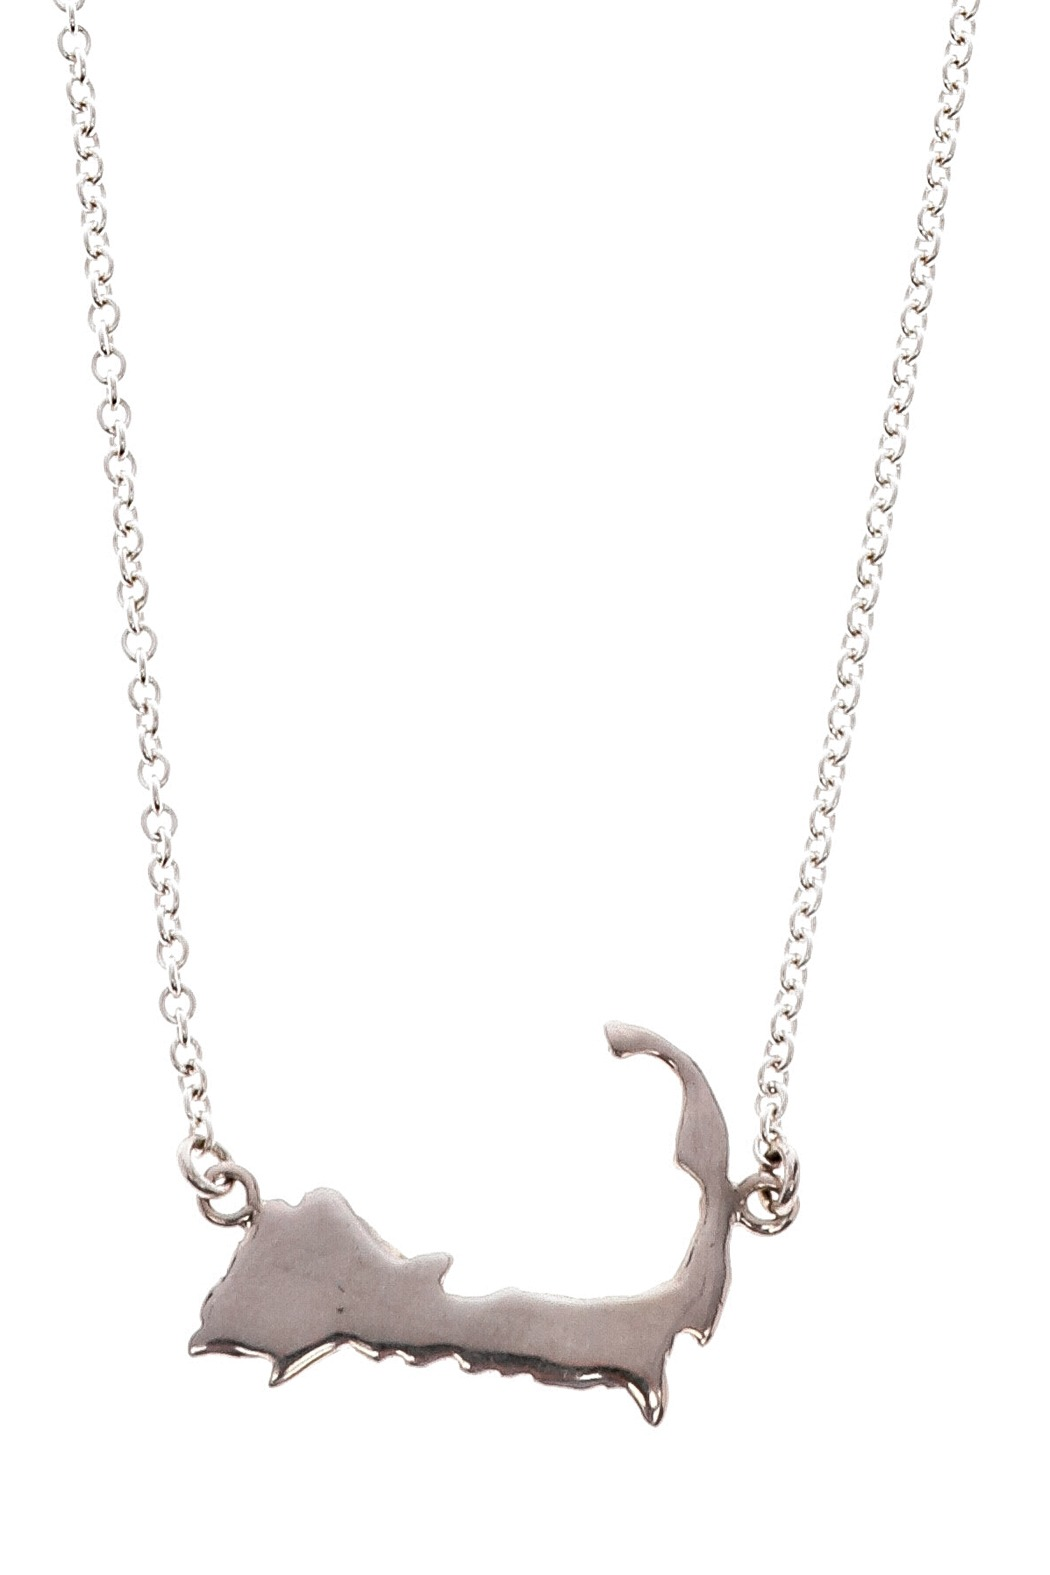 Jewelry Studio Of Wellfleet Cape Cod Silhouette Necklace From